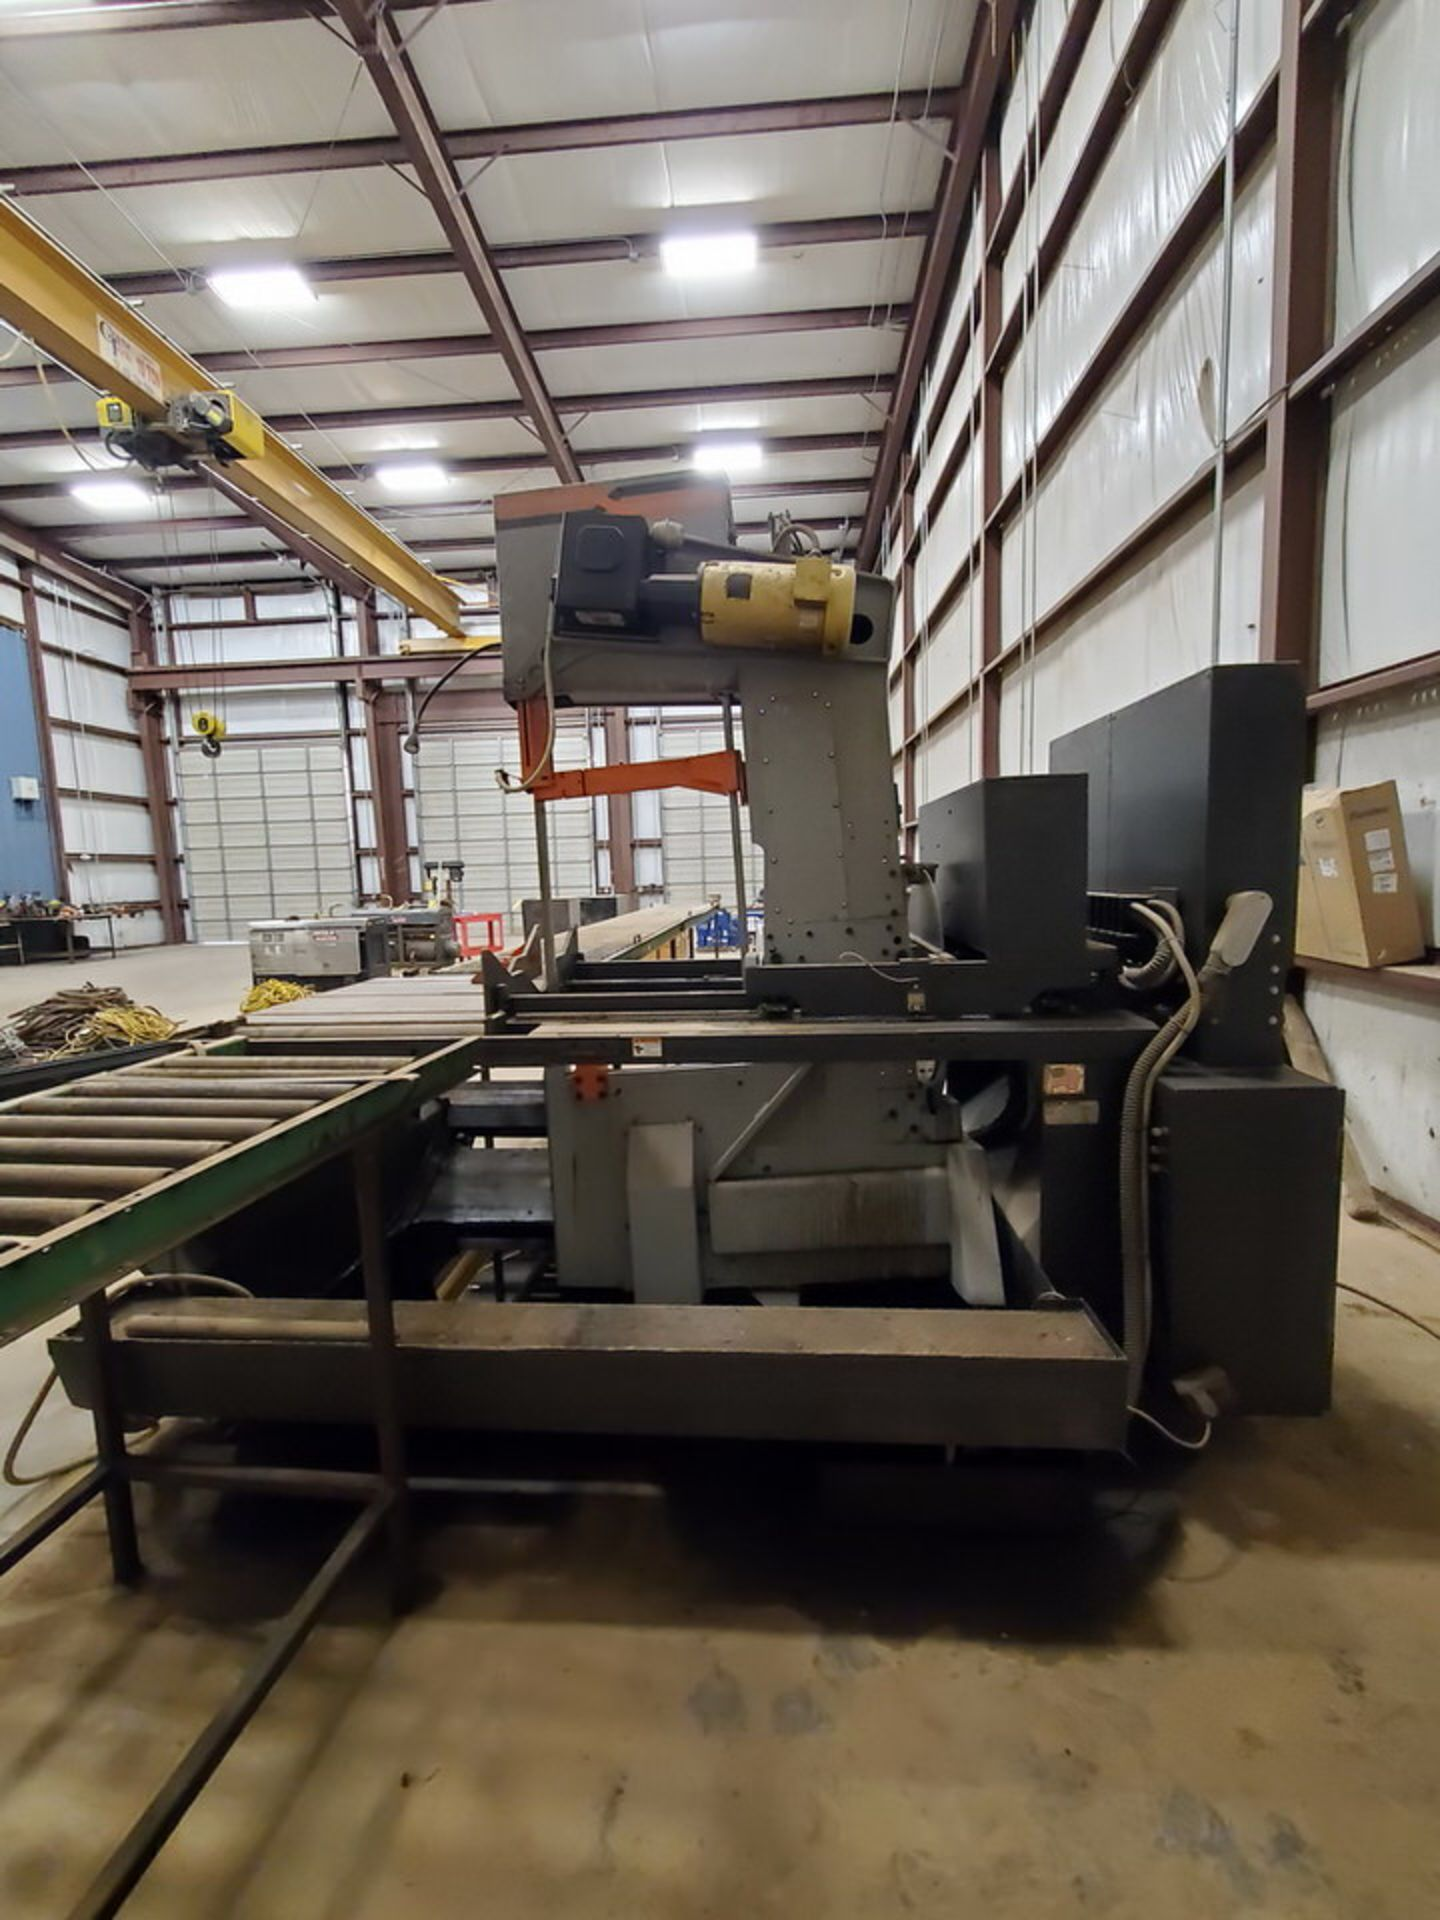 "HEM VT140HM-60-CTS Vertical Bandsaw 440V, 10HP, 23.61A, Blade L: 1-1/2"" x 20' x .050""; W/ Spare - Image 5 of 16"